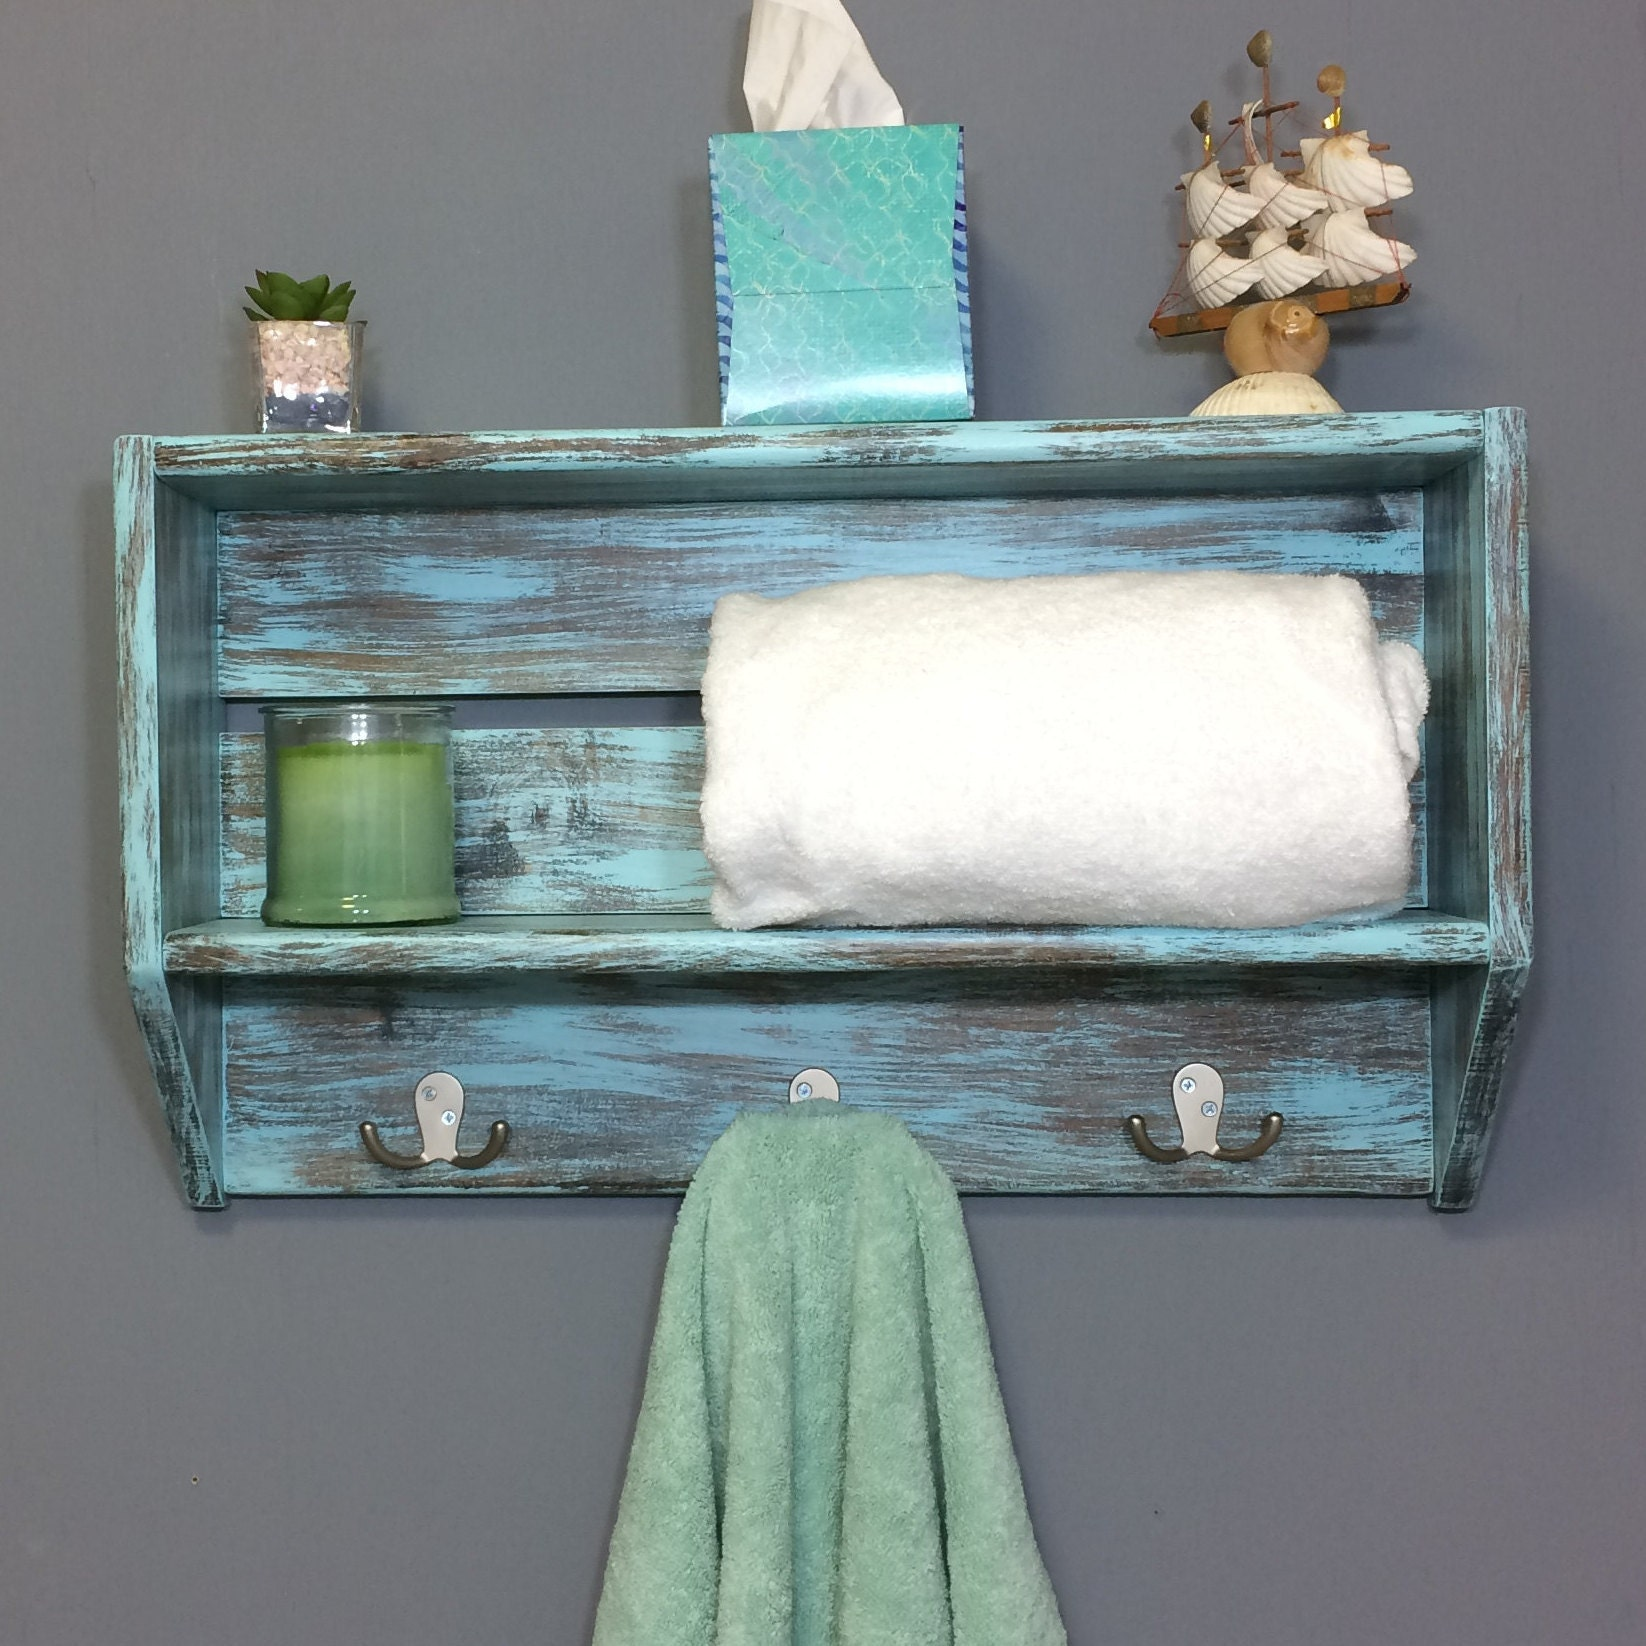 bathroom shelves bathroom wall shelf towel rack shelf | Etsy